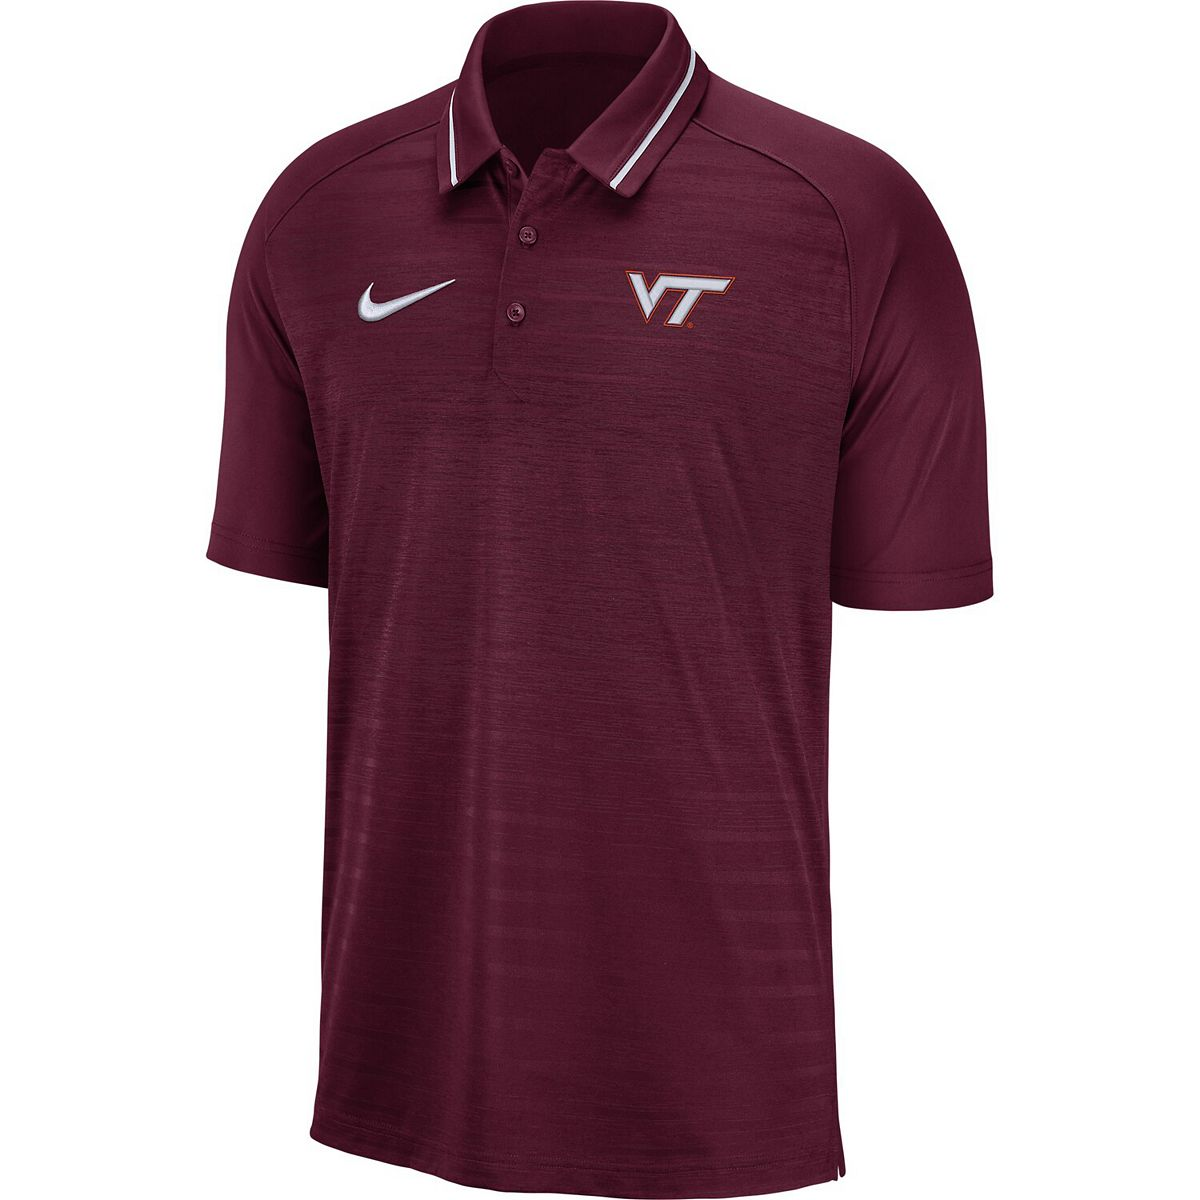 Men's Nike Maroon Virginia Tech Hokies Stripe Performance Raglan Polo ohSj8